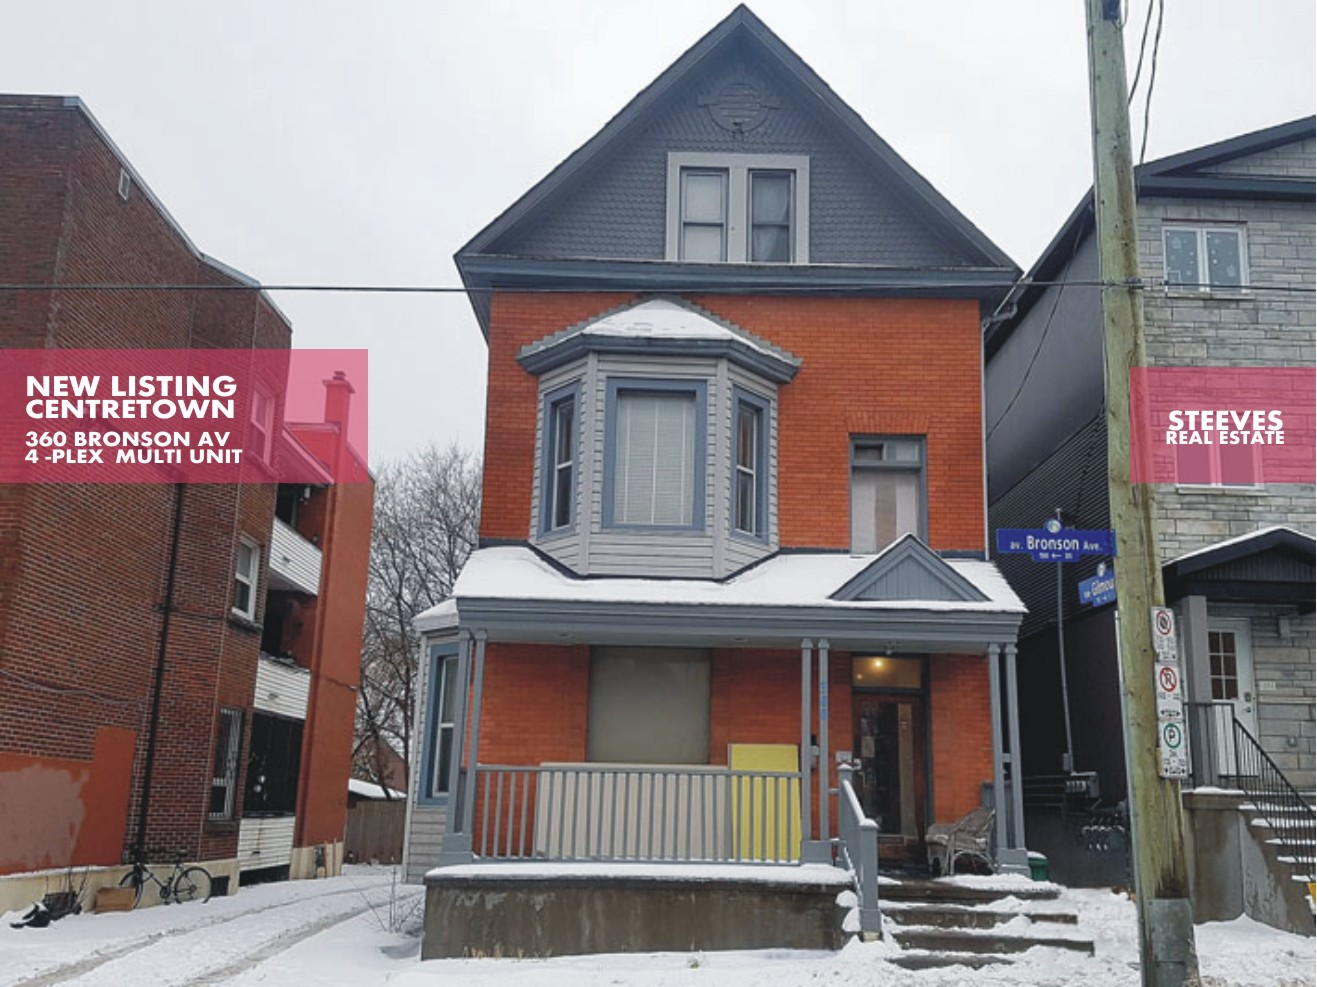 **CANCELLED**  – 360 BRONSON AV – 4PLEX IN CENTRETOWN